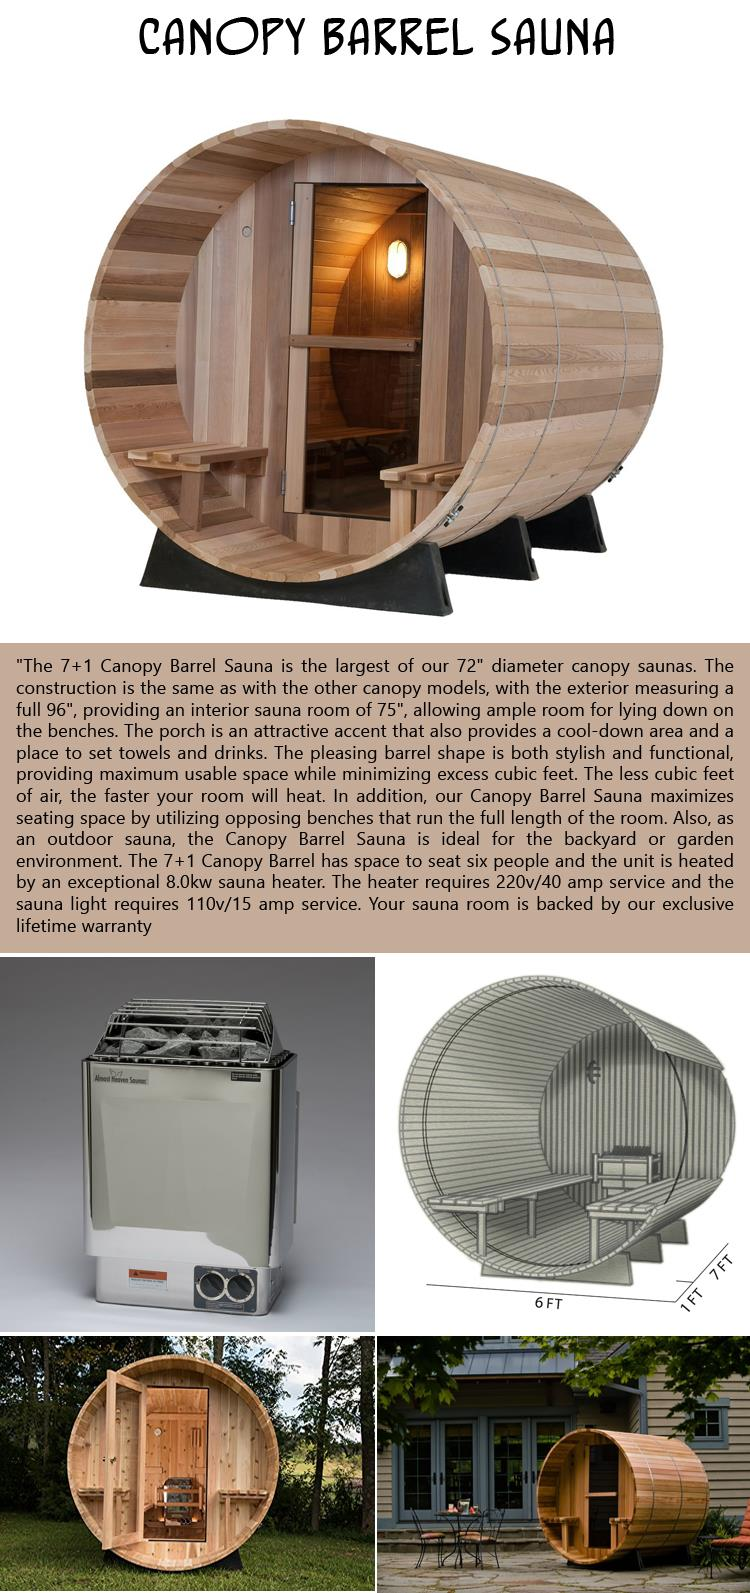 Canopy Barrel Sauna